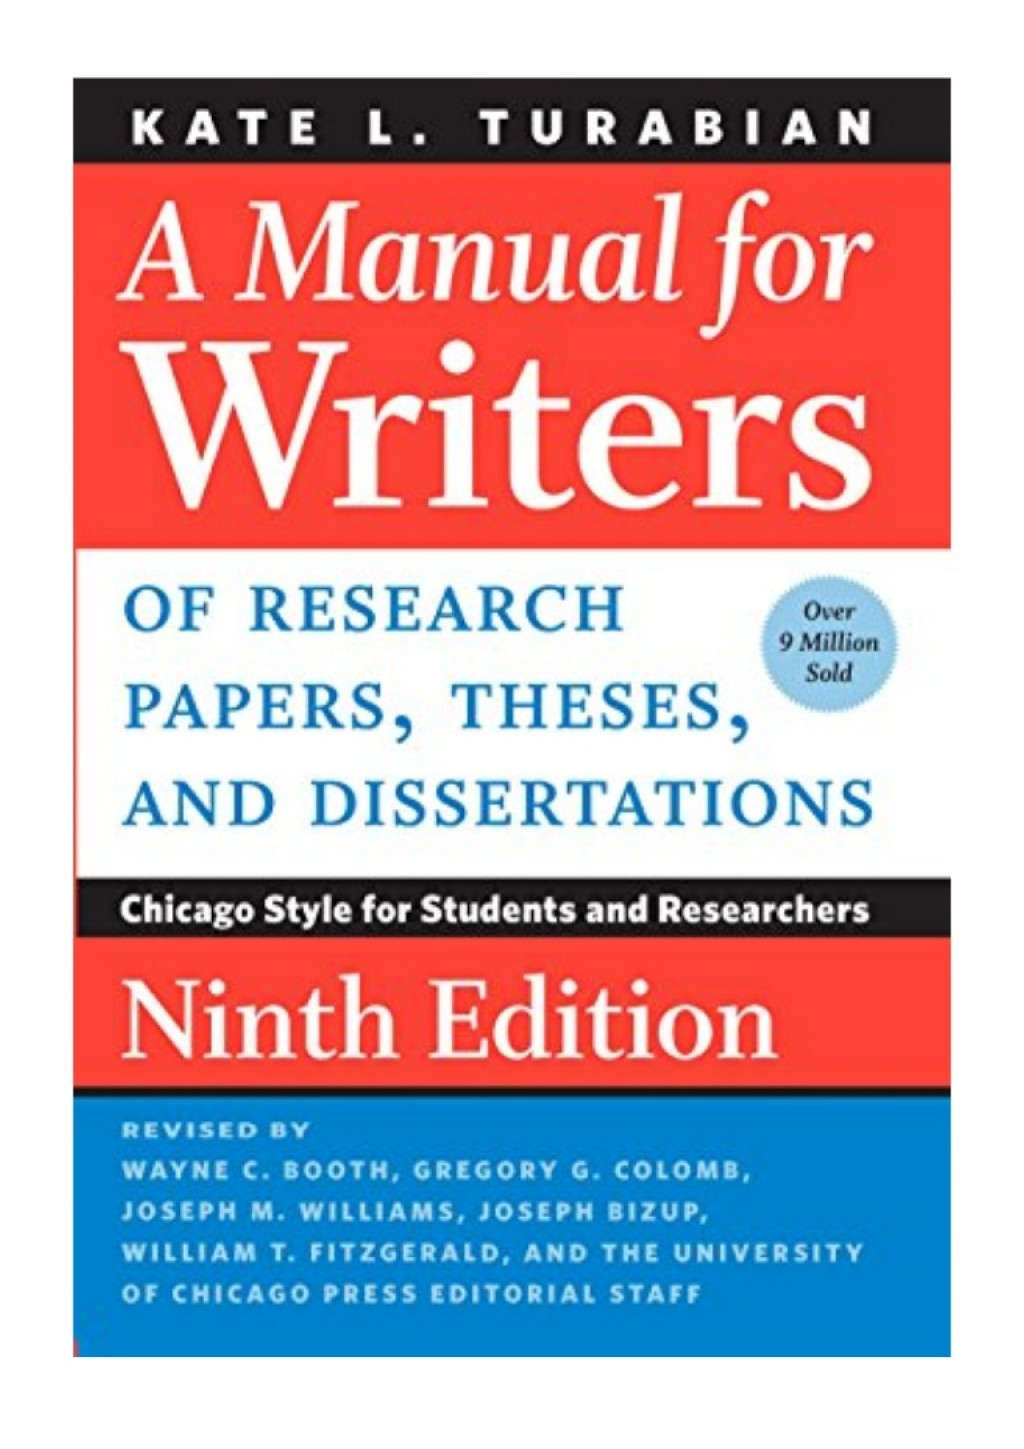 004 Manual For Writers Of Research Papers Theses And Dissertations 9th Edition B07cqgqjpy Amanualforwritersofresearchpapersthesesanddissertationsnintheditionbykatel Thumbnail Frightening A Pdf Large